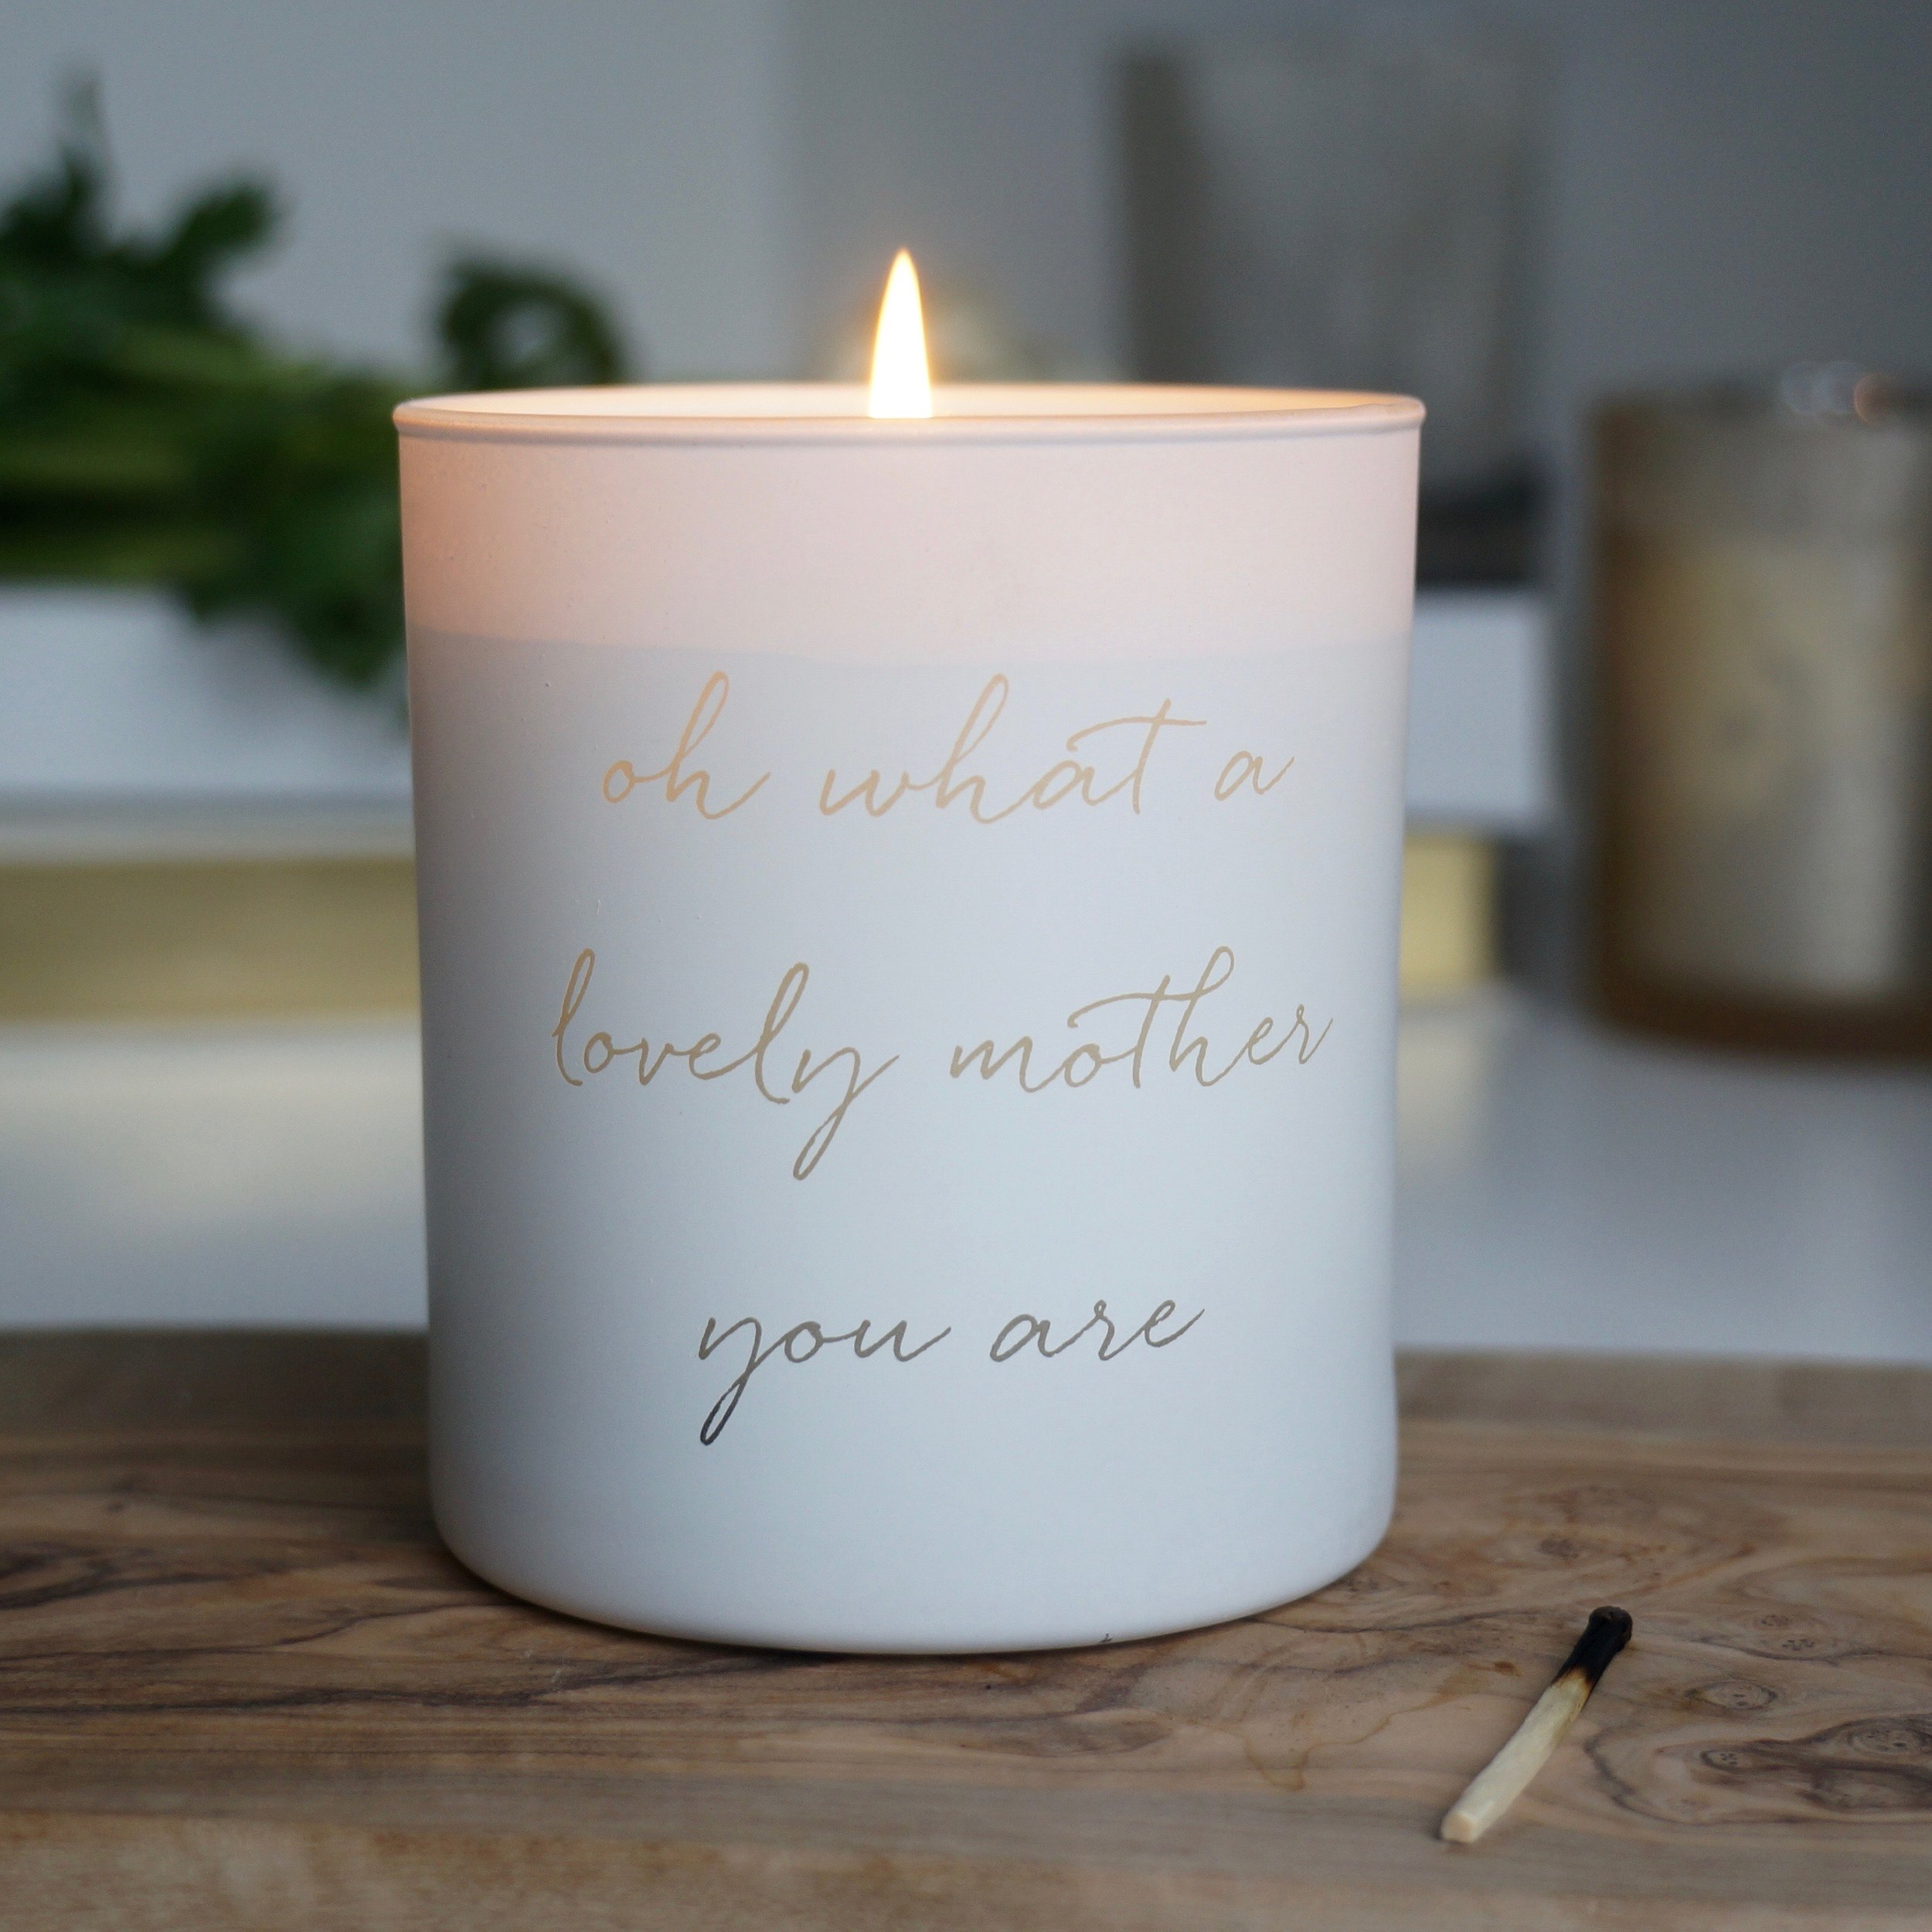 Scented Candle by Illumer - £29